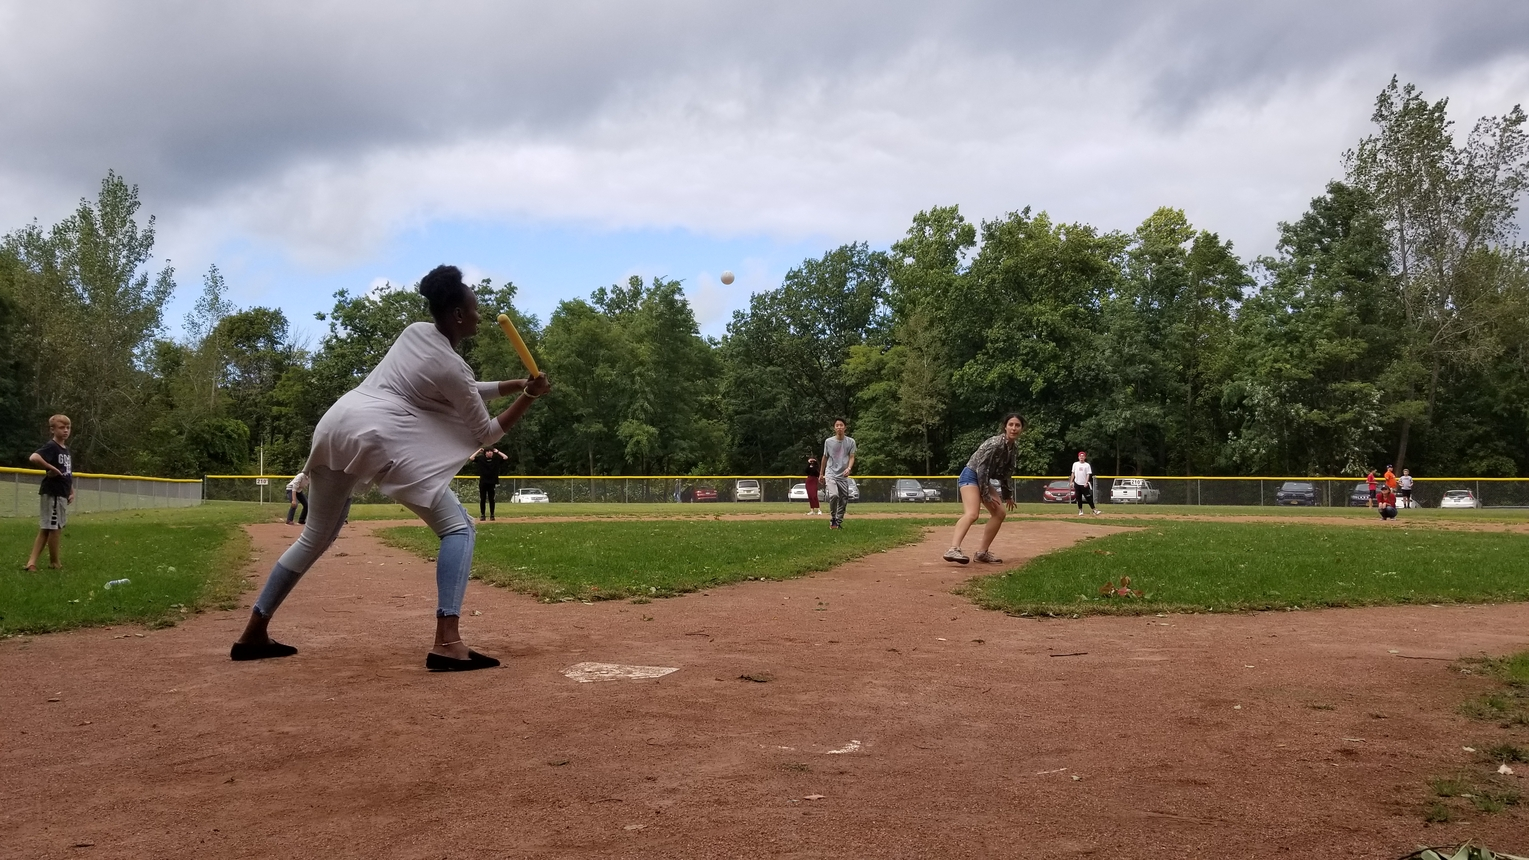 Annual Picnic Baseball Game